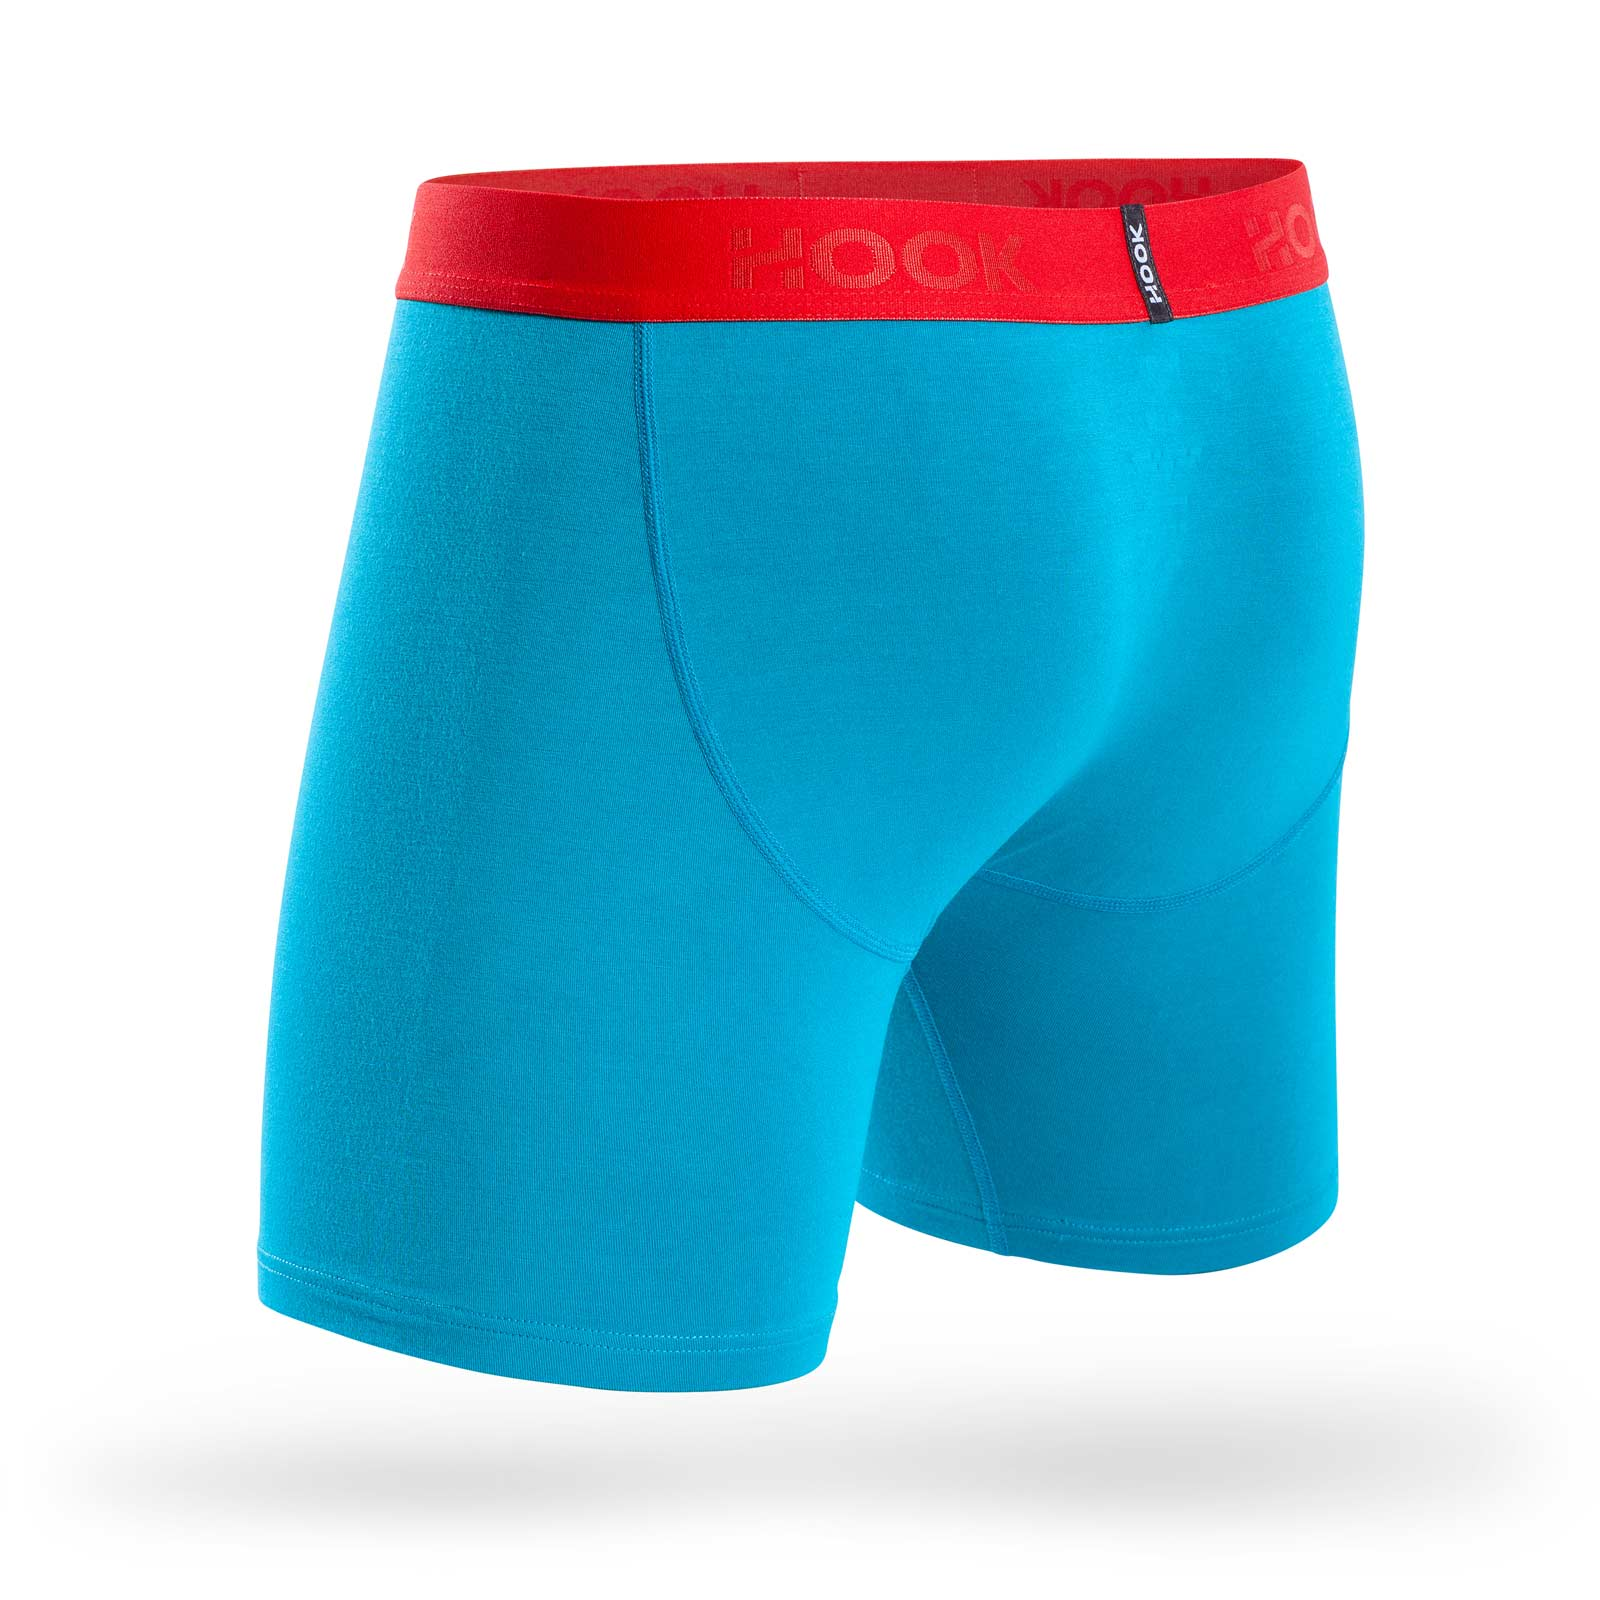 Boxer Hook Underwear Feel Cyan et Rouge